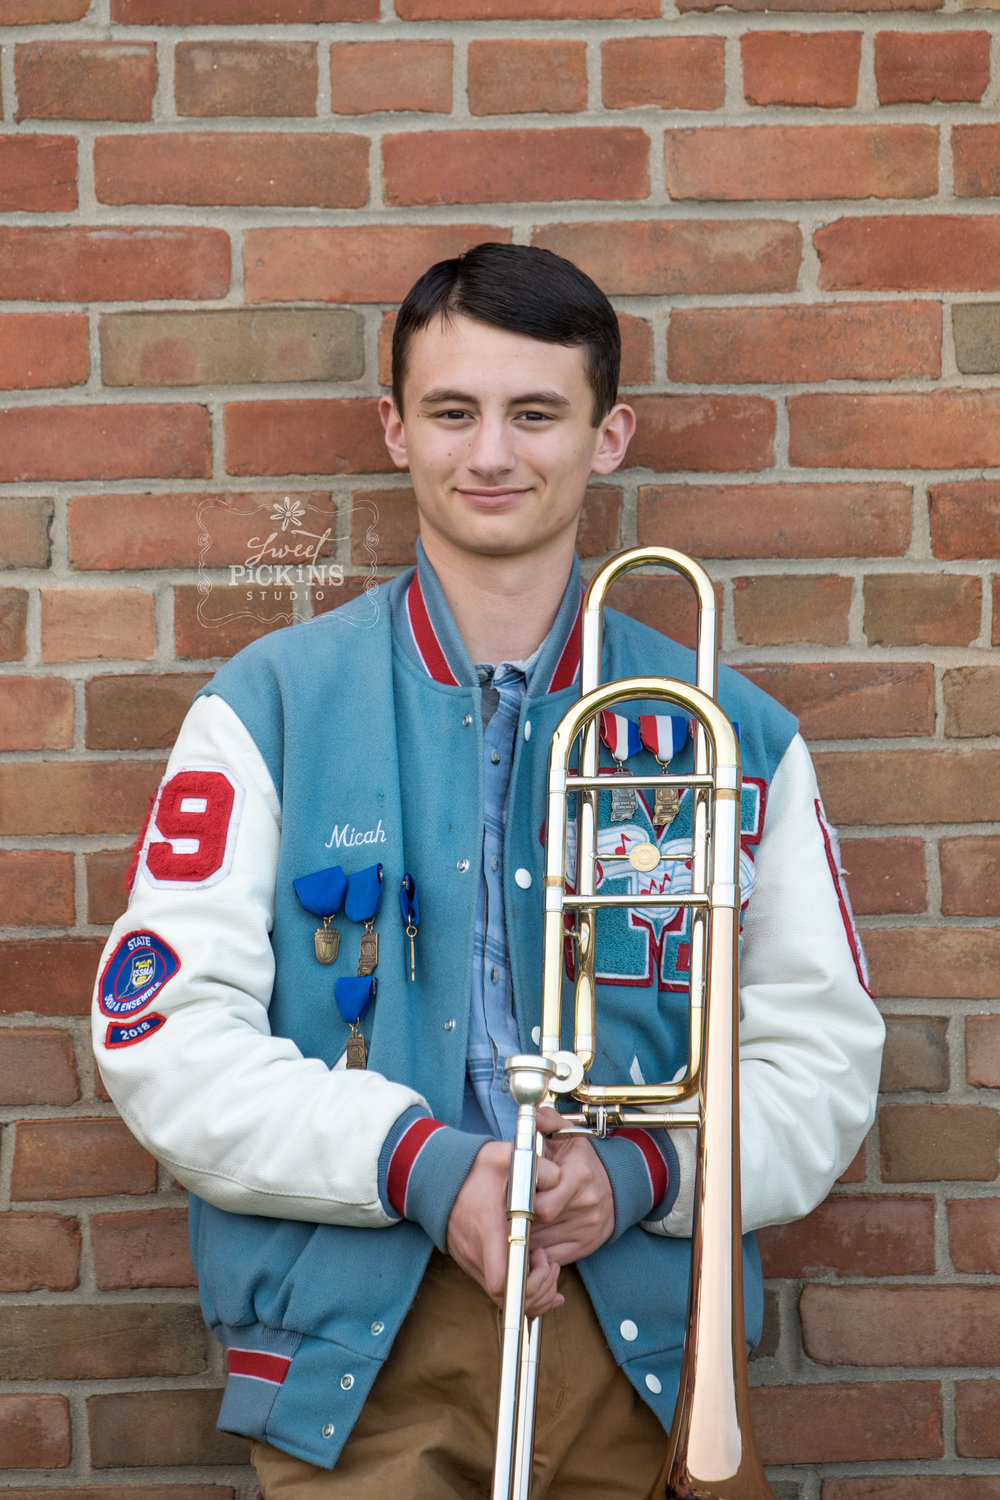 Musical Marching Band Portrait Photography by Sweet Pickins Studio, Peru, Indiana